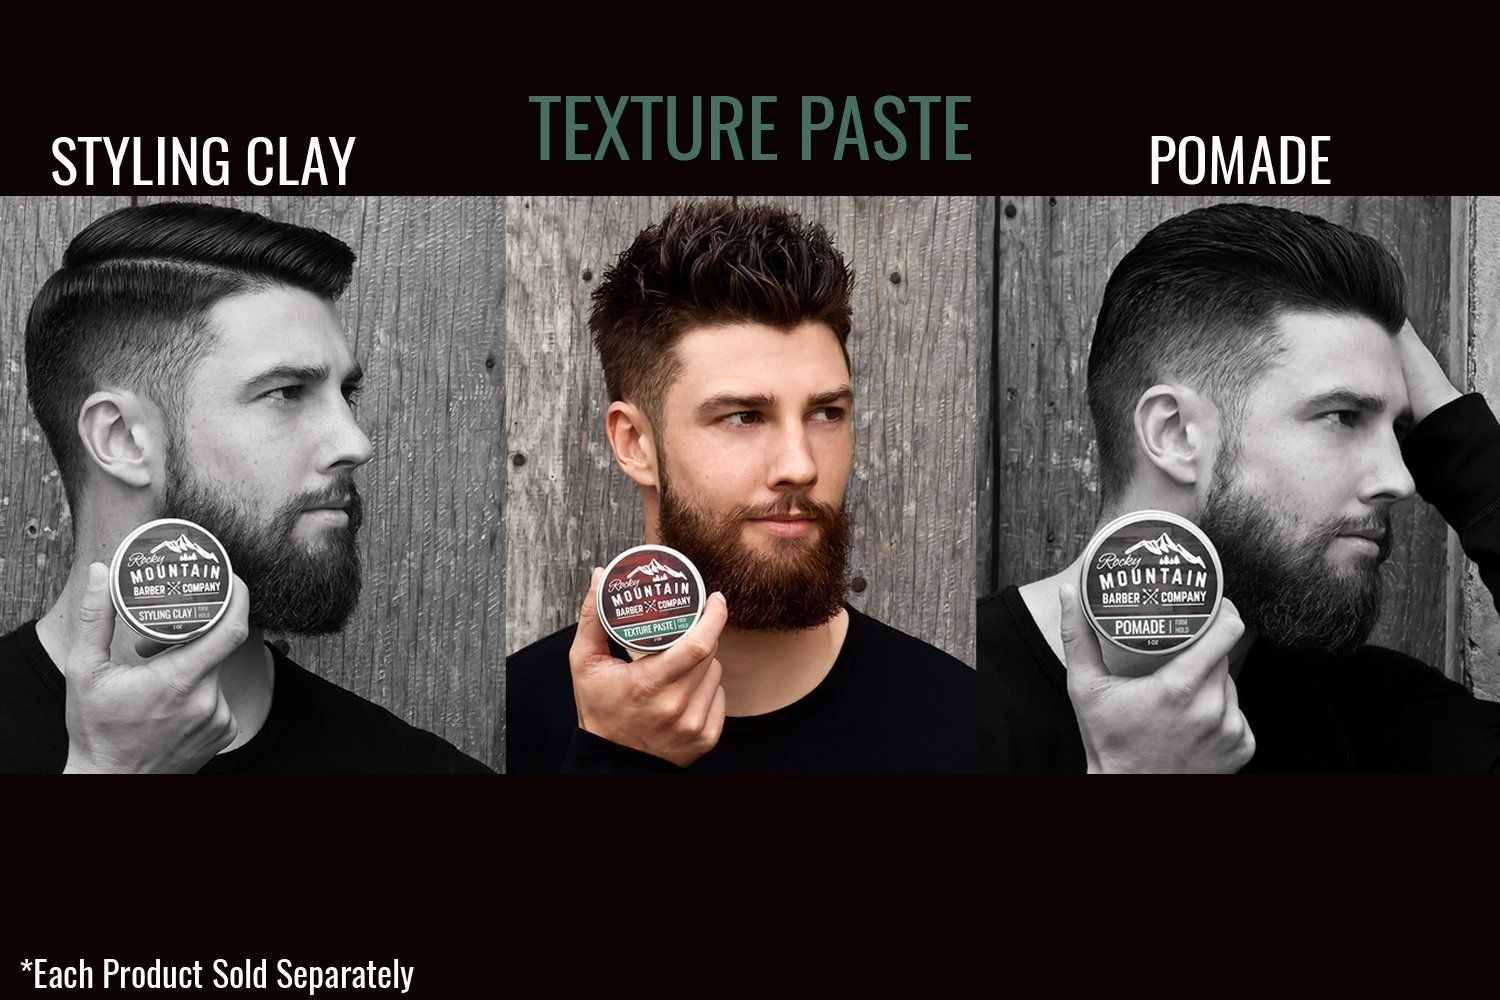 Texture Paste For Men Canadian Made Hair Styling Cream With Pliable Light Firm Hold For All Hair Styles Shine Fr Styling Cream Hair Cream How To Make Hair